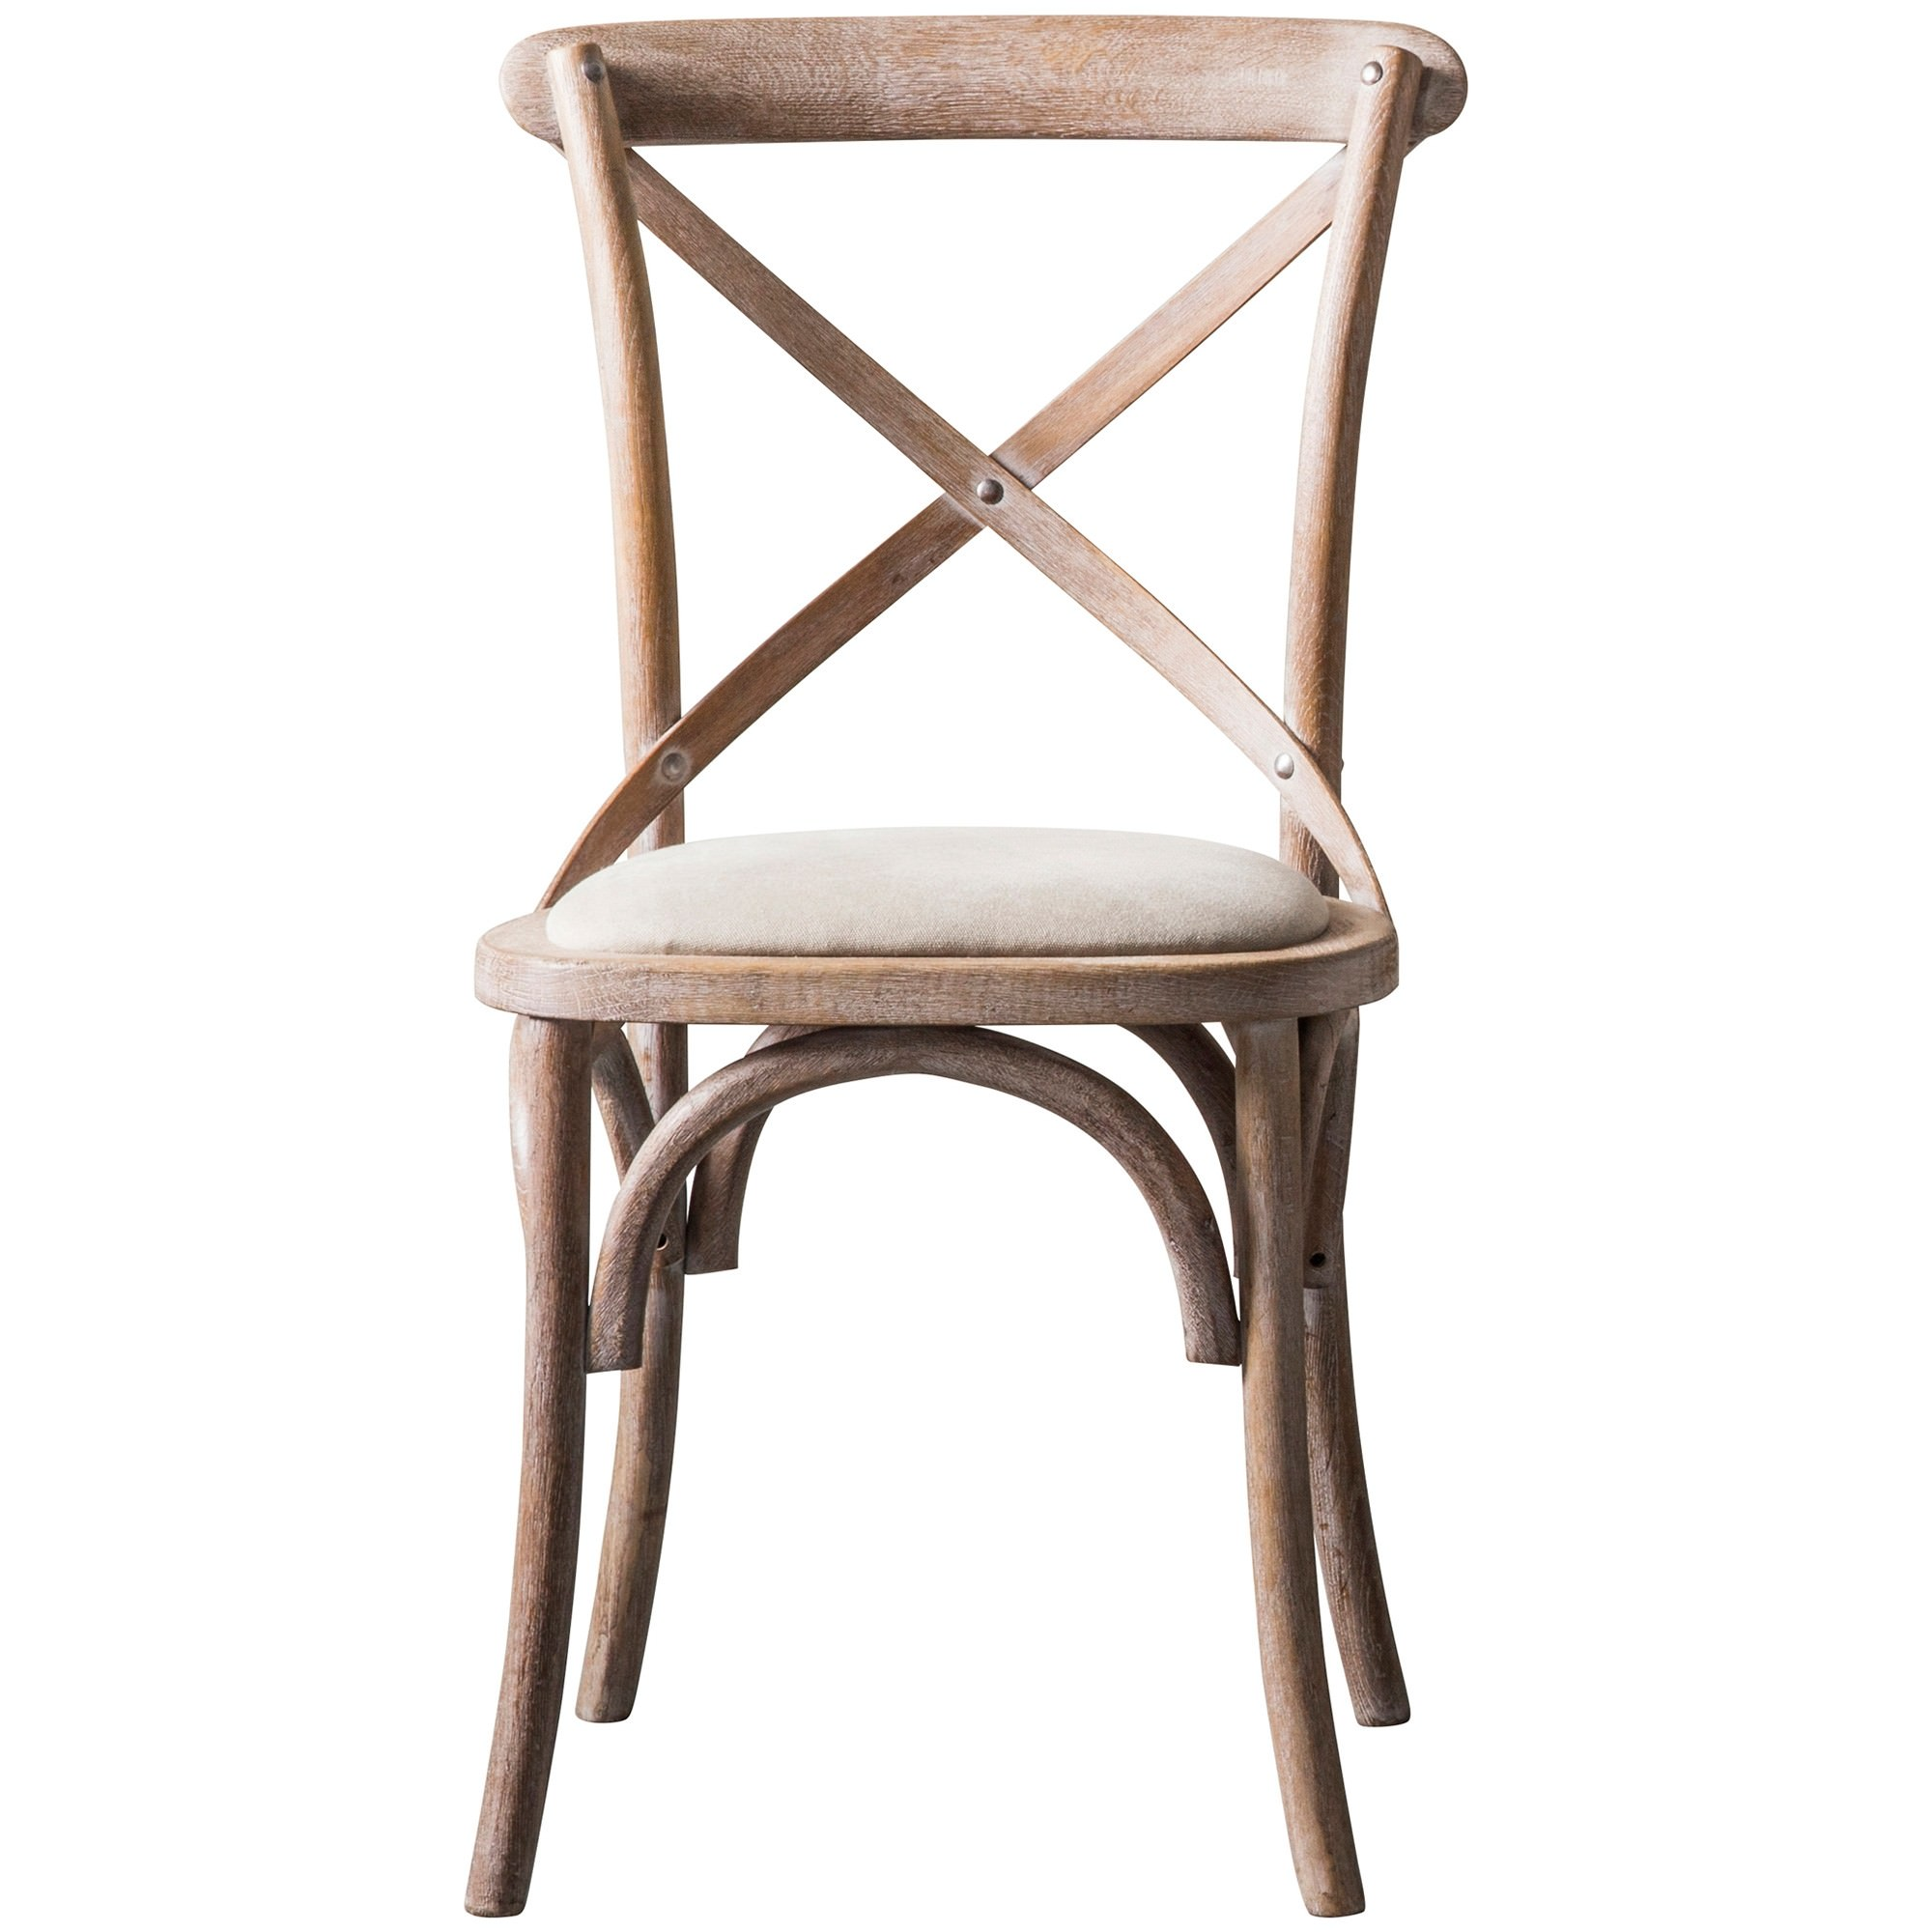 Zola Oak Timber Cross Back Dining Chair, Lime Washed Oak